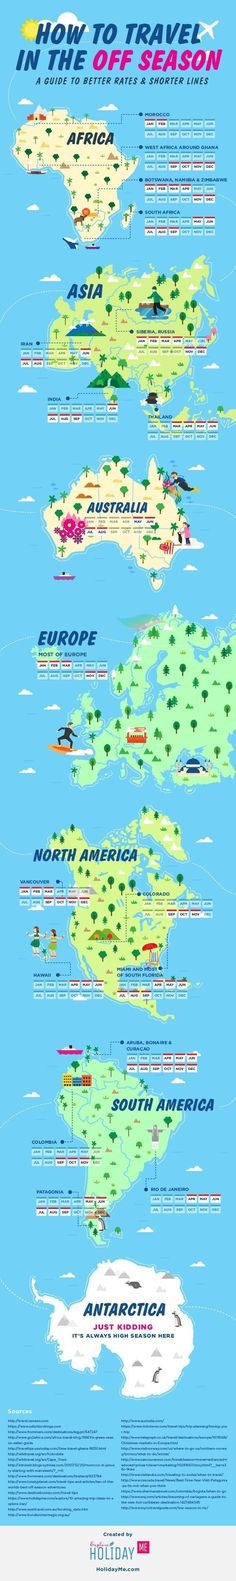 Affordable Vacation Spots: A Global Guide To Off-season Travel Infographic #vacationspotsworld #travelinfographic